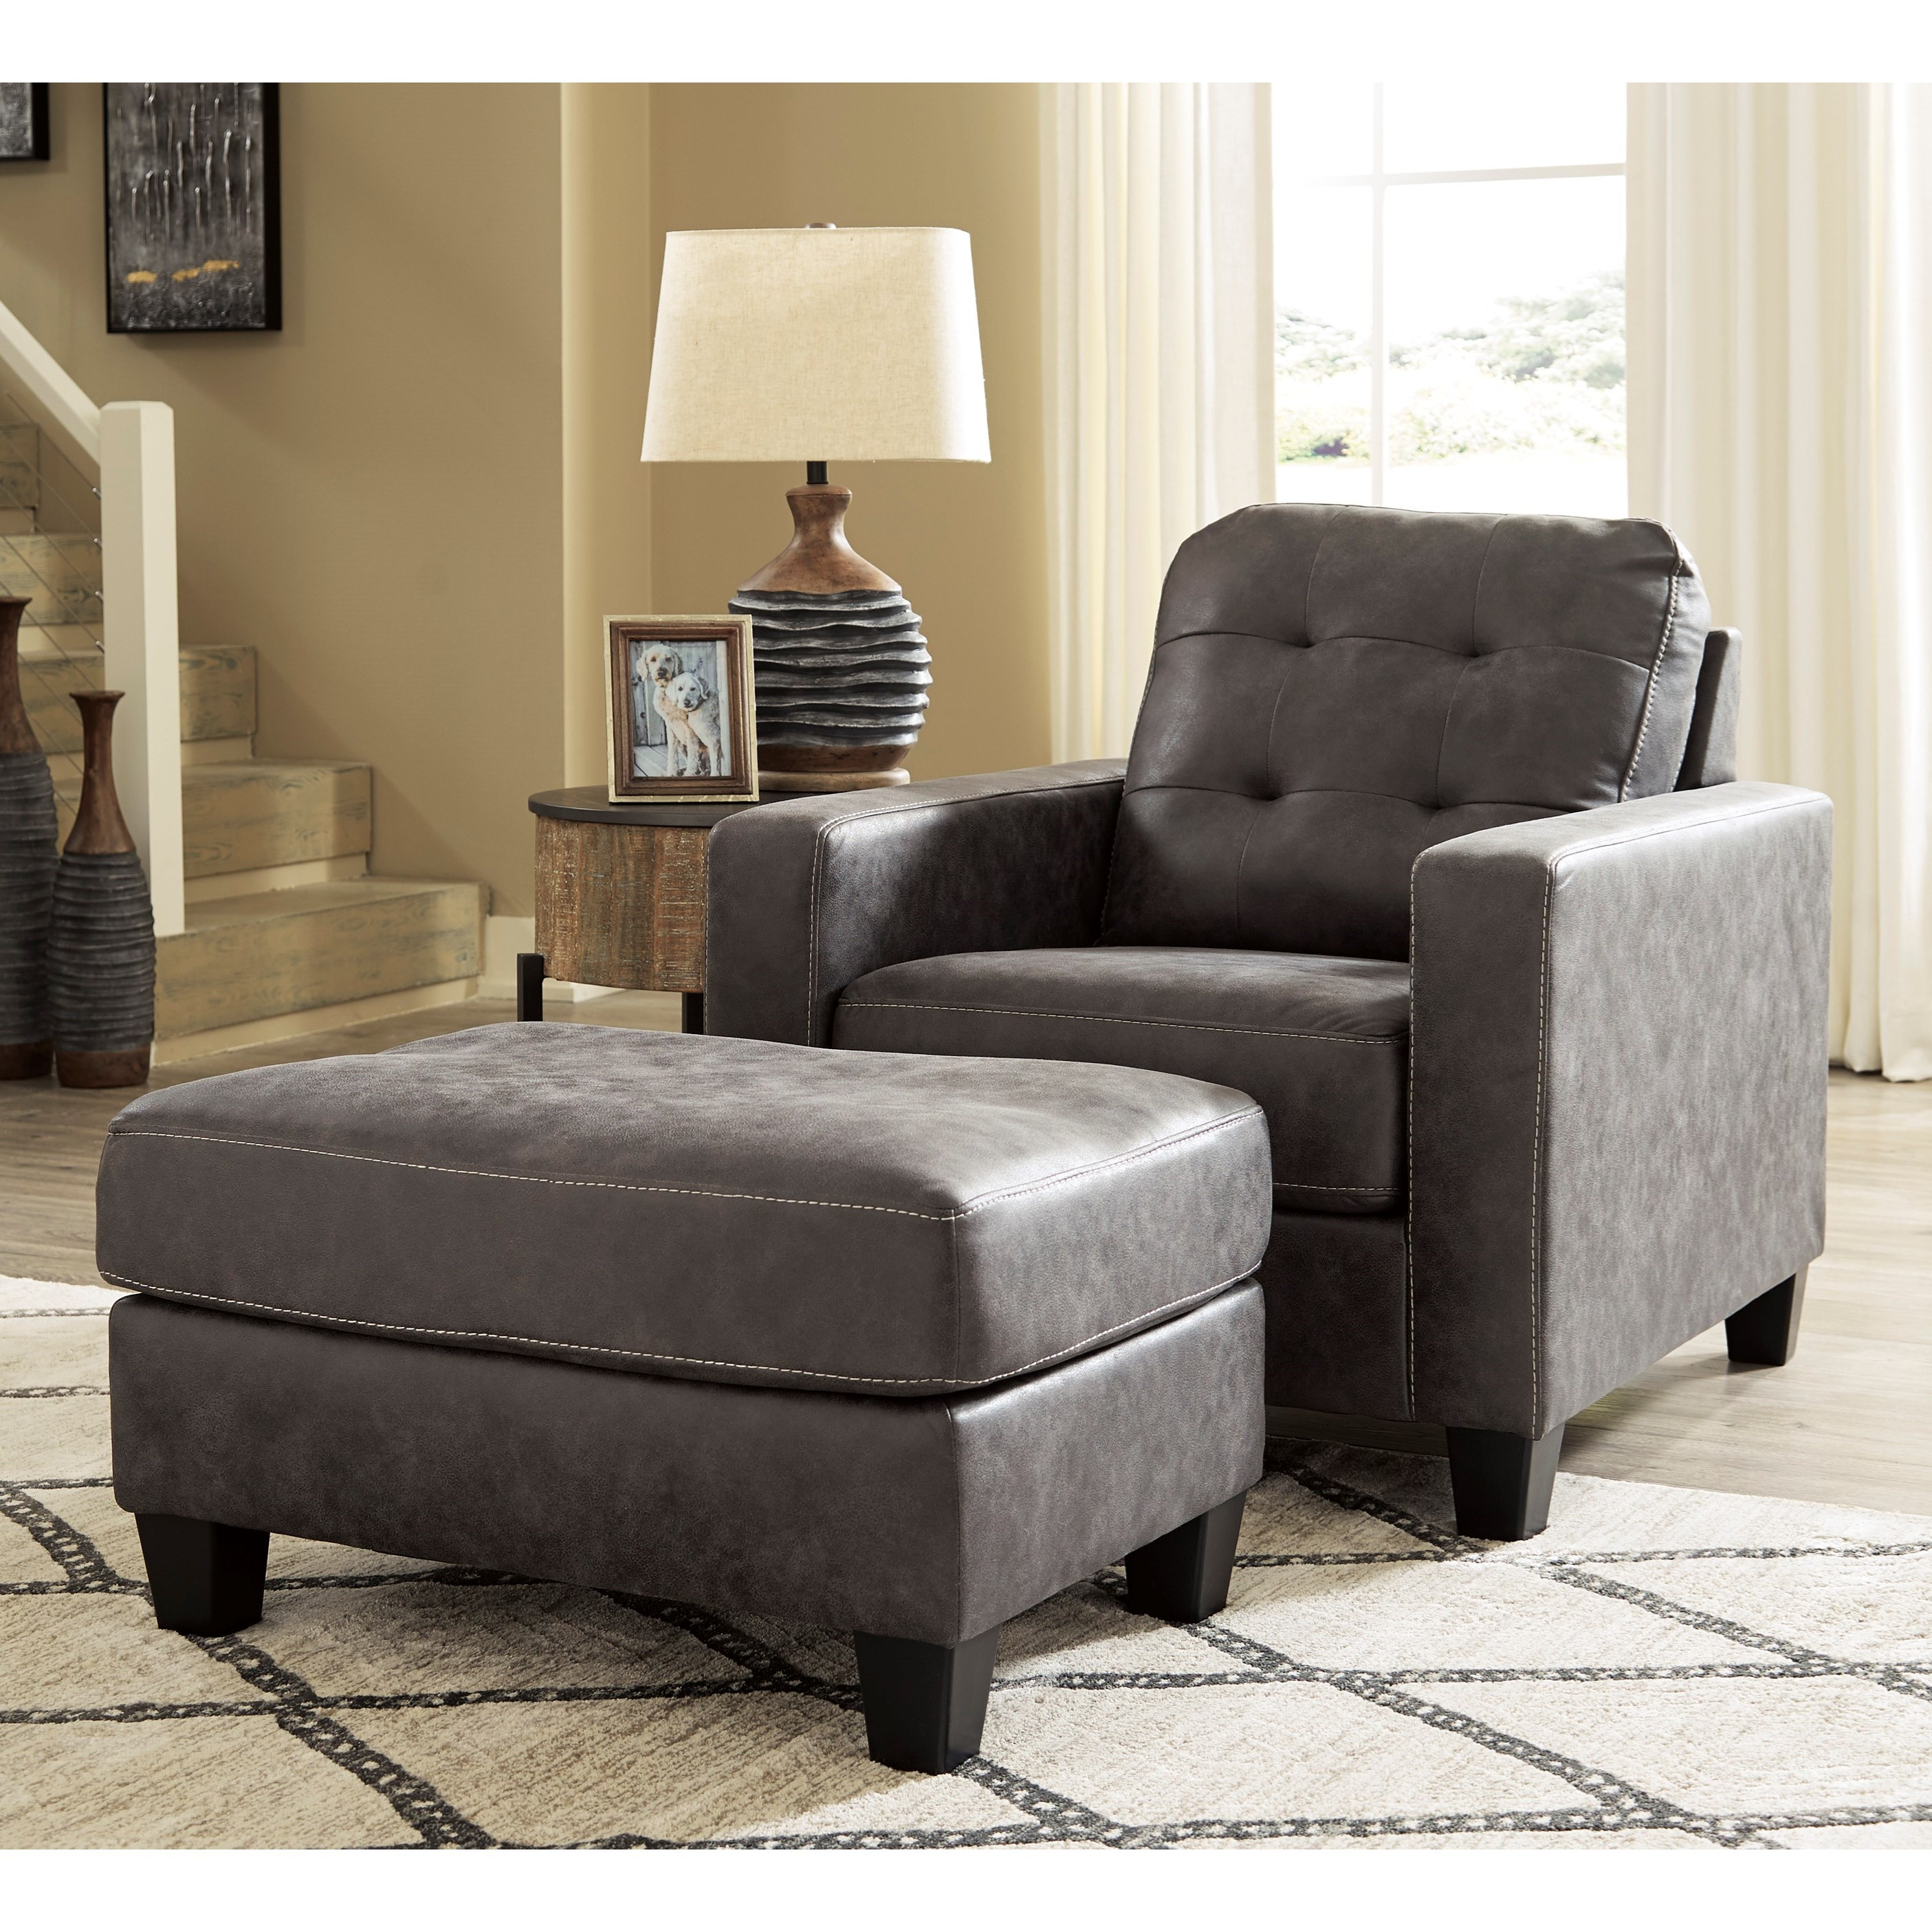 Venaldi Chair and Ottoman Set by Benchcraft at Miller Waldrop Furniture and Decor